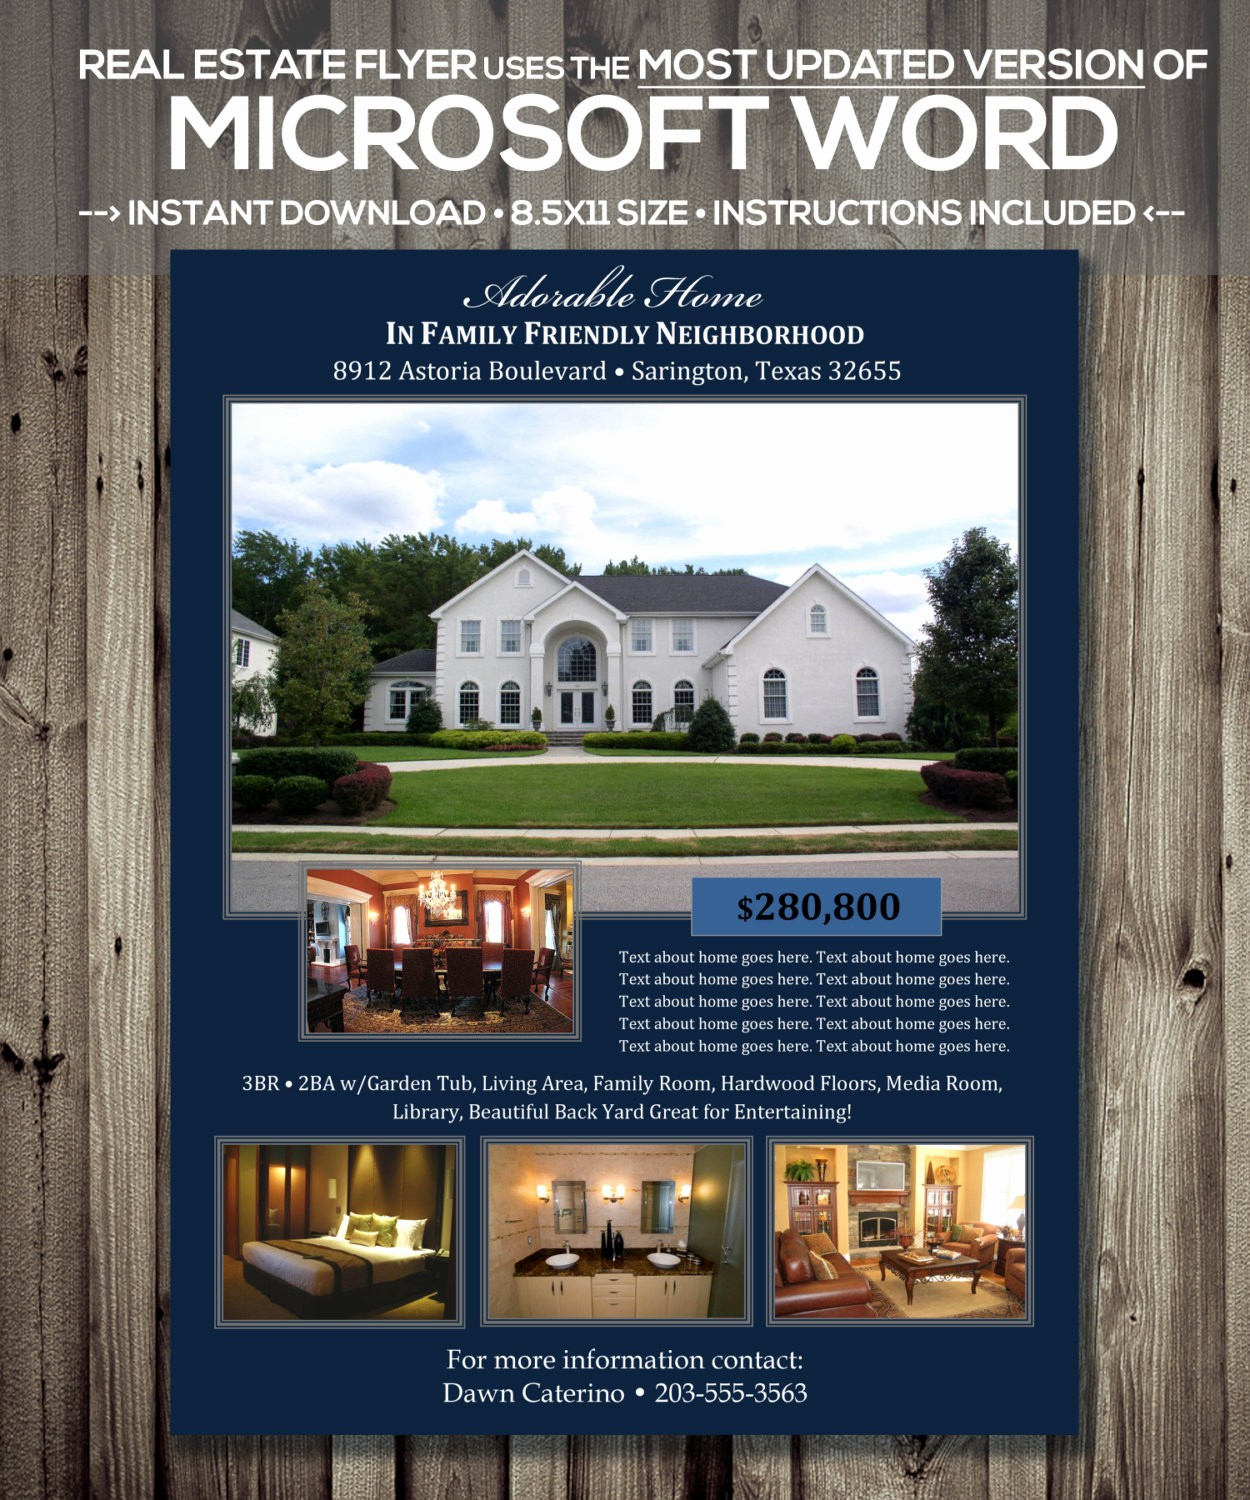 House for Sale Flyer Template New Real Estate Flyer Template Microsoft Word Cx Version